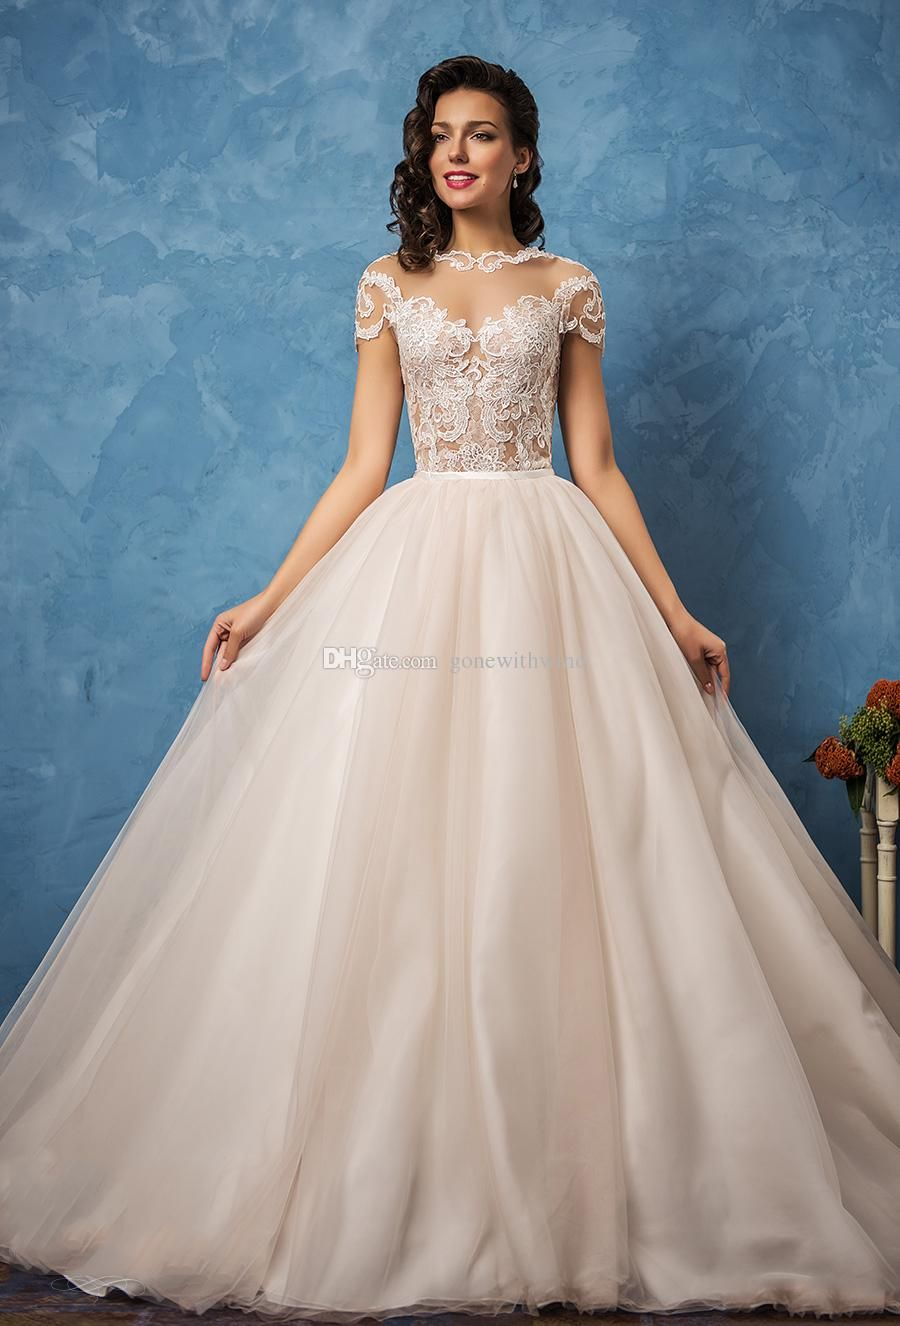 Princess ball gown wedding dresses 2017 amelia sposa bridal short ...